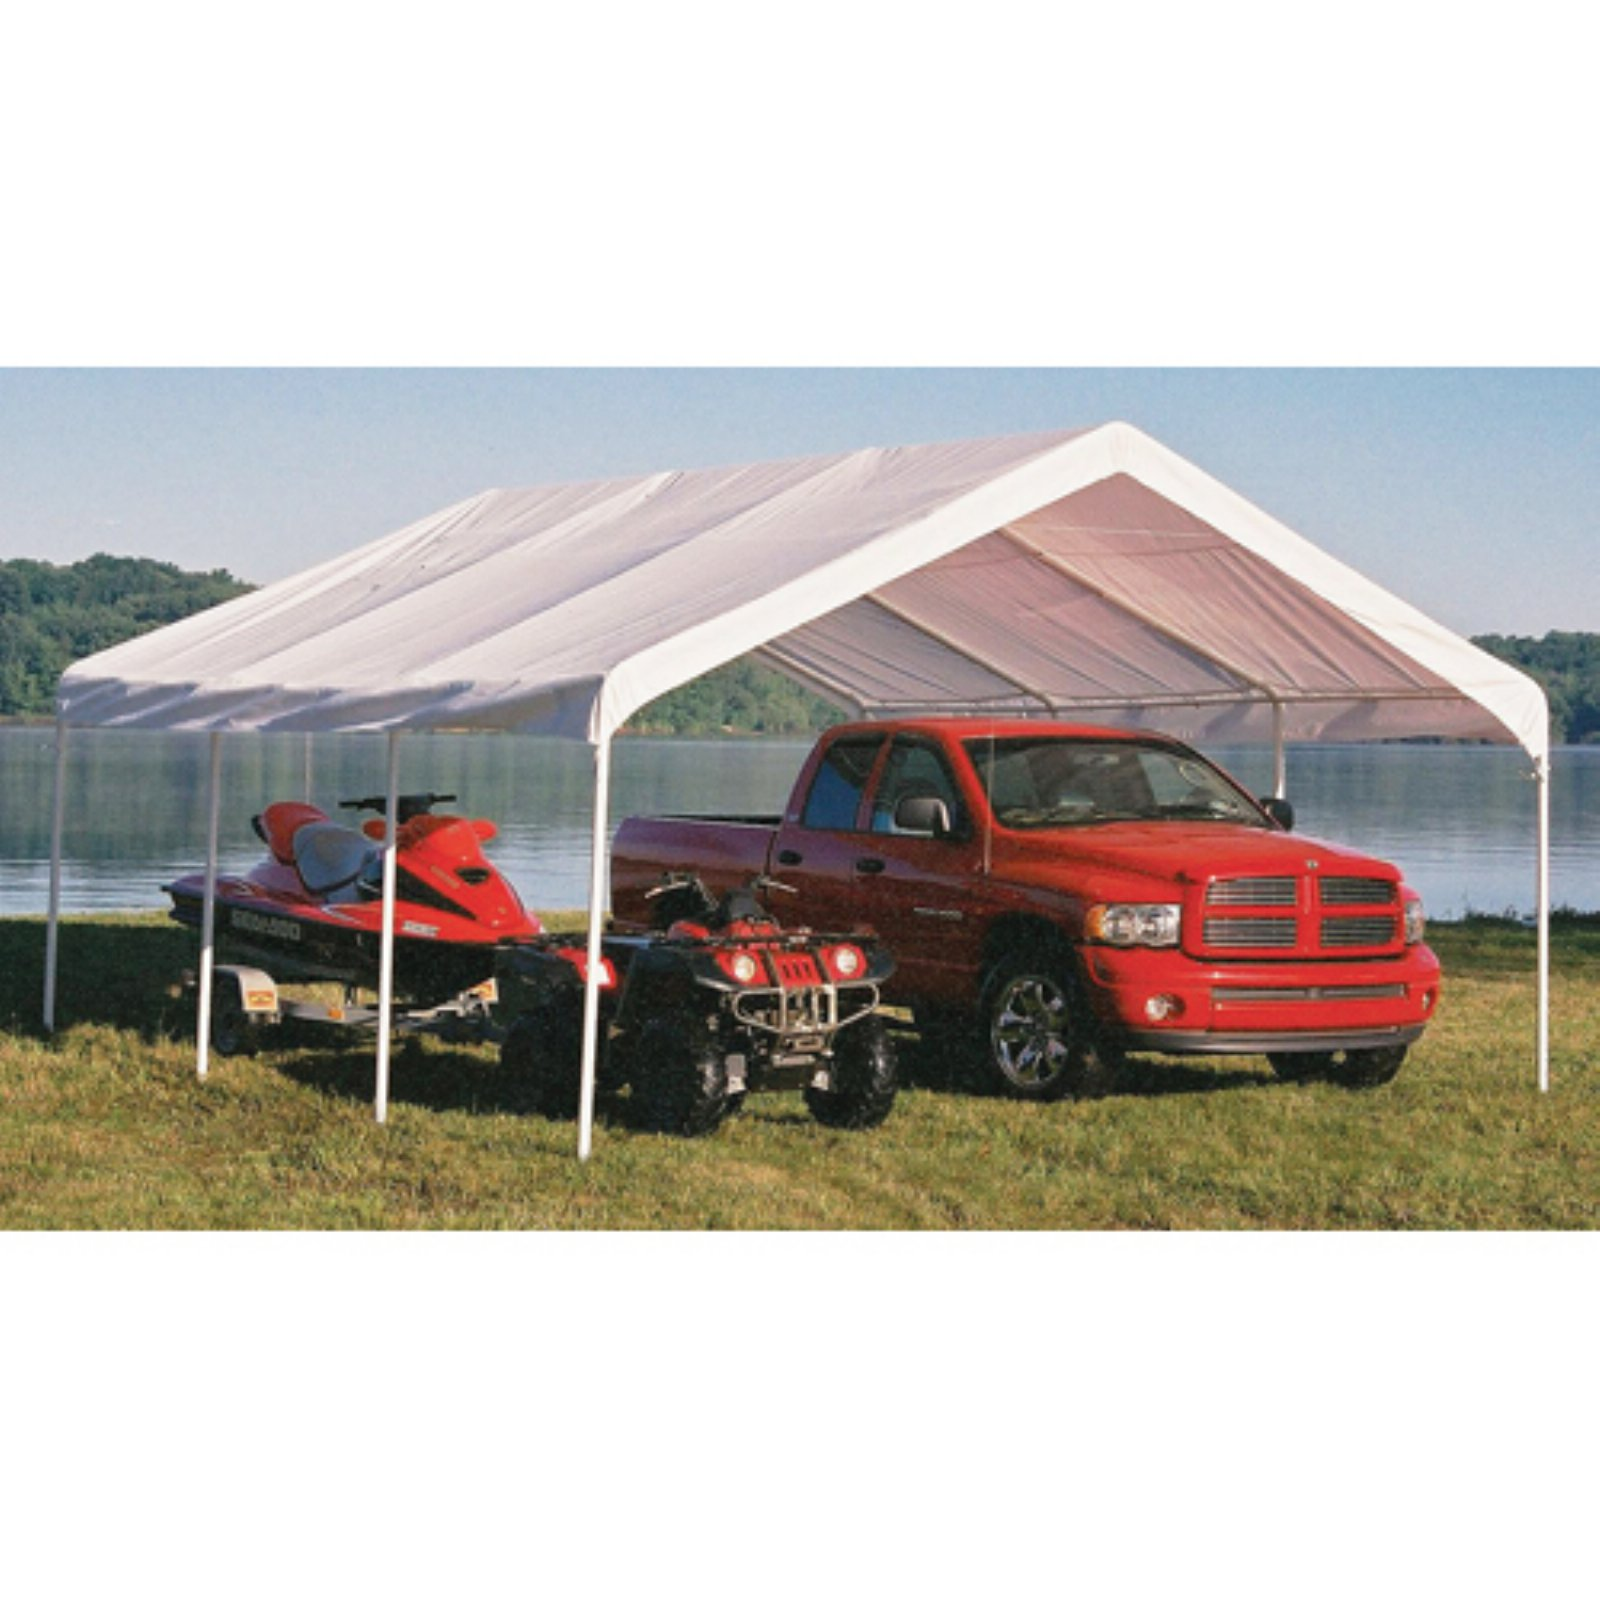 Shelterlogic Super Max 18' x 20' White Premium Canopy